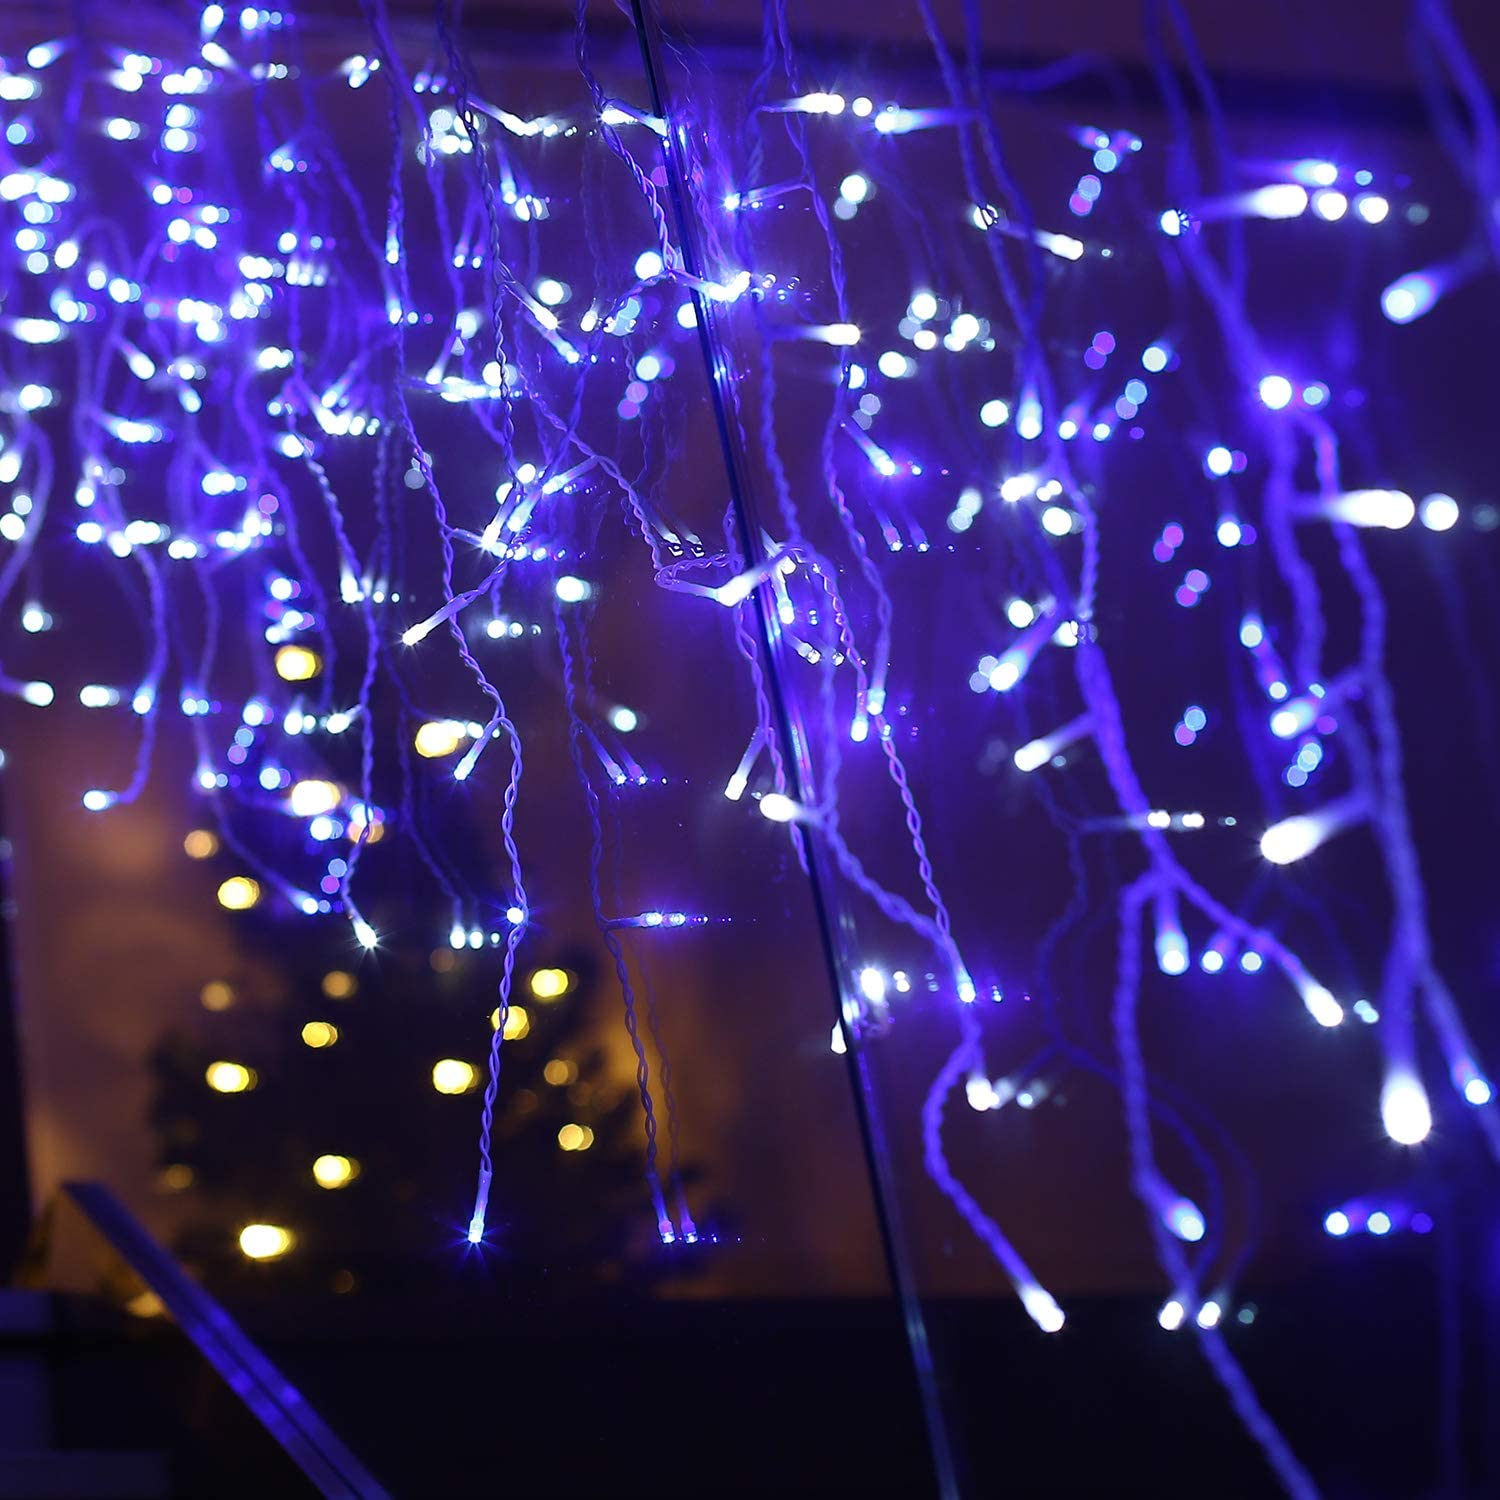 Gliimus 220 Lights Icicle Light (White & Blue LED) with 3 Flash Changing Modes Waterproof Fairy Twinkle Decorative Lights for Party/Christmas/Patio/Home